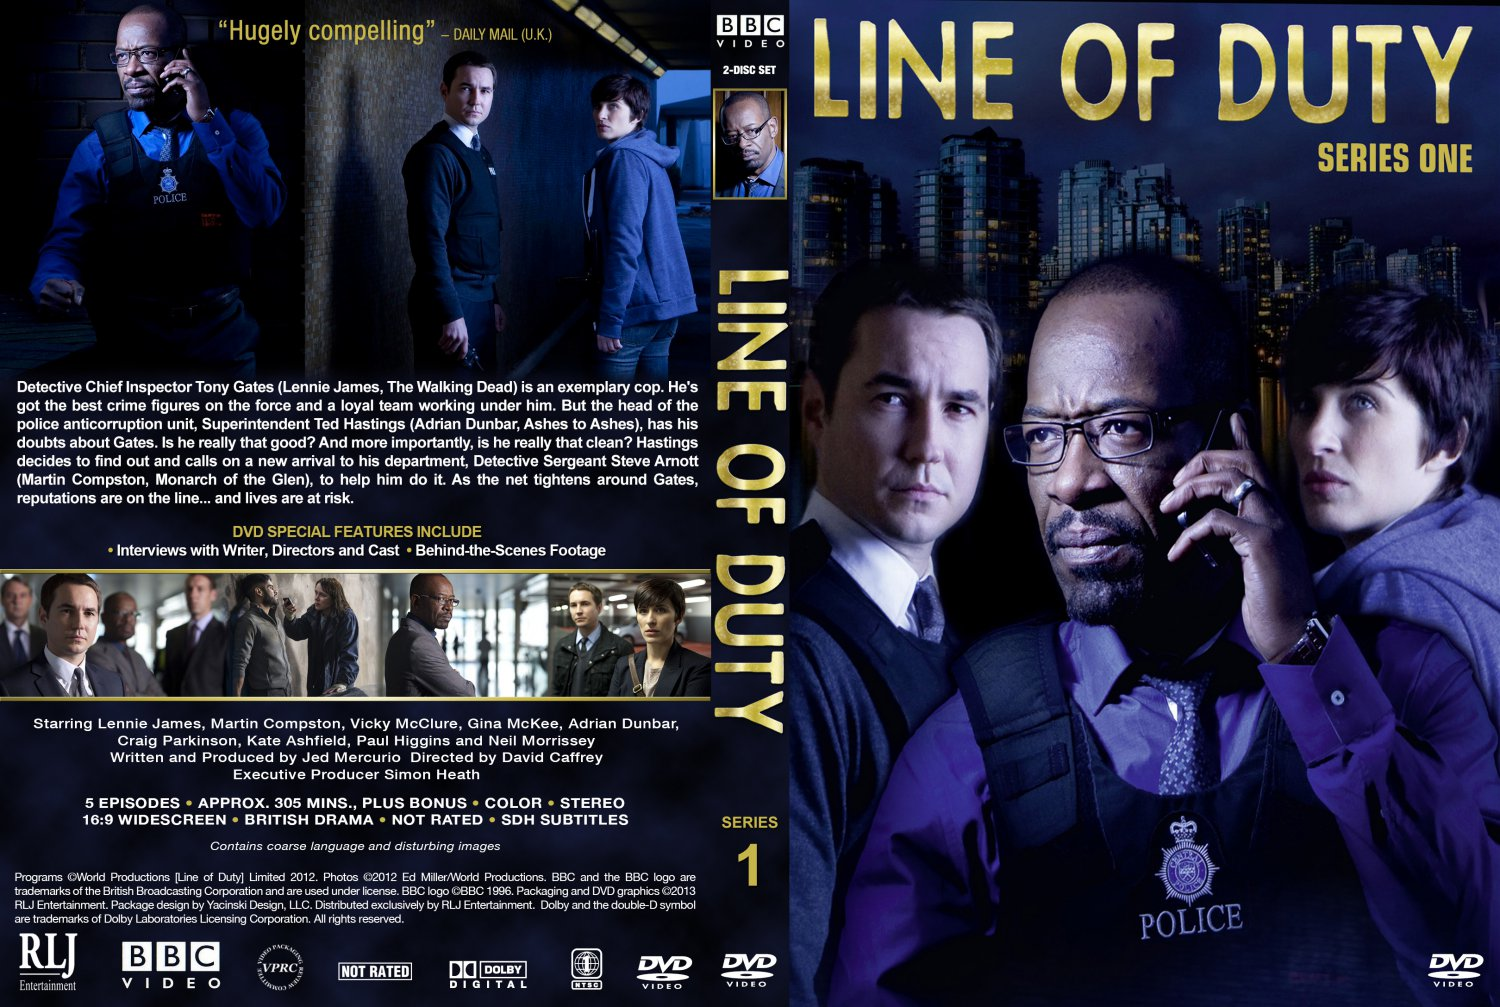 Line of Duty - Series 1 - TV DVD Custom Covers - Line of Duty-S1 ...